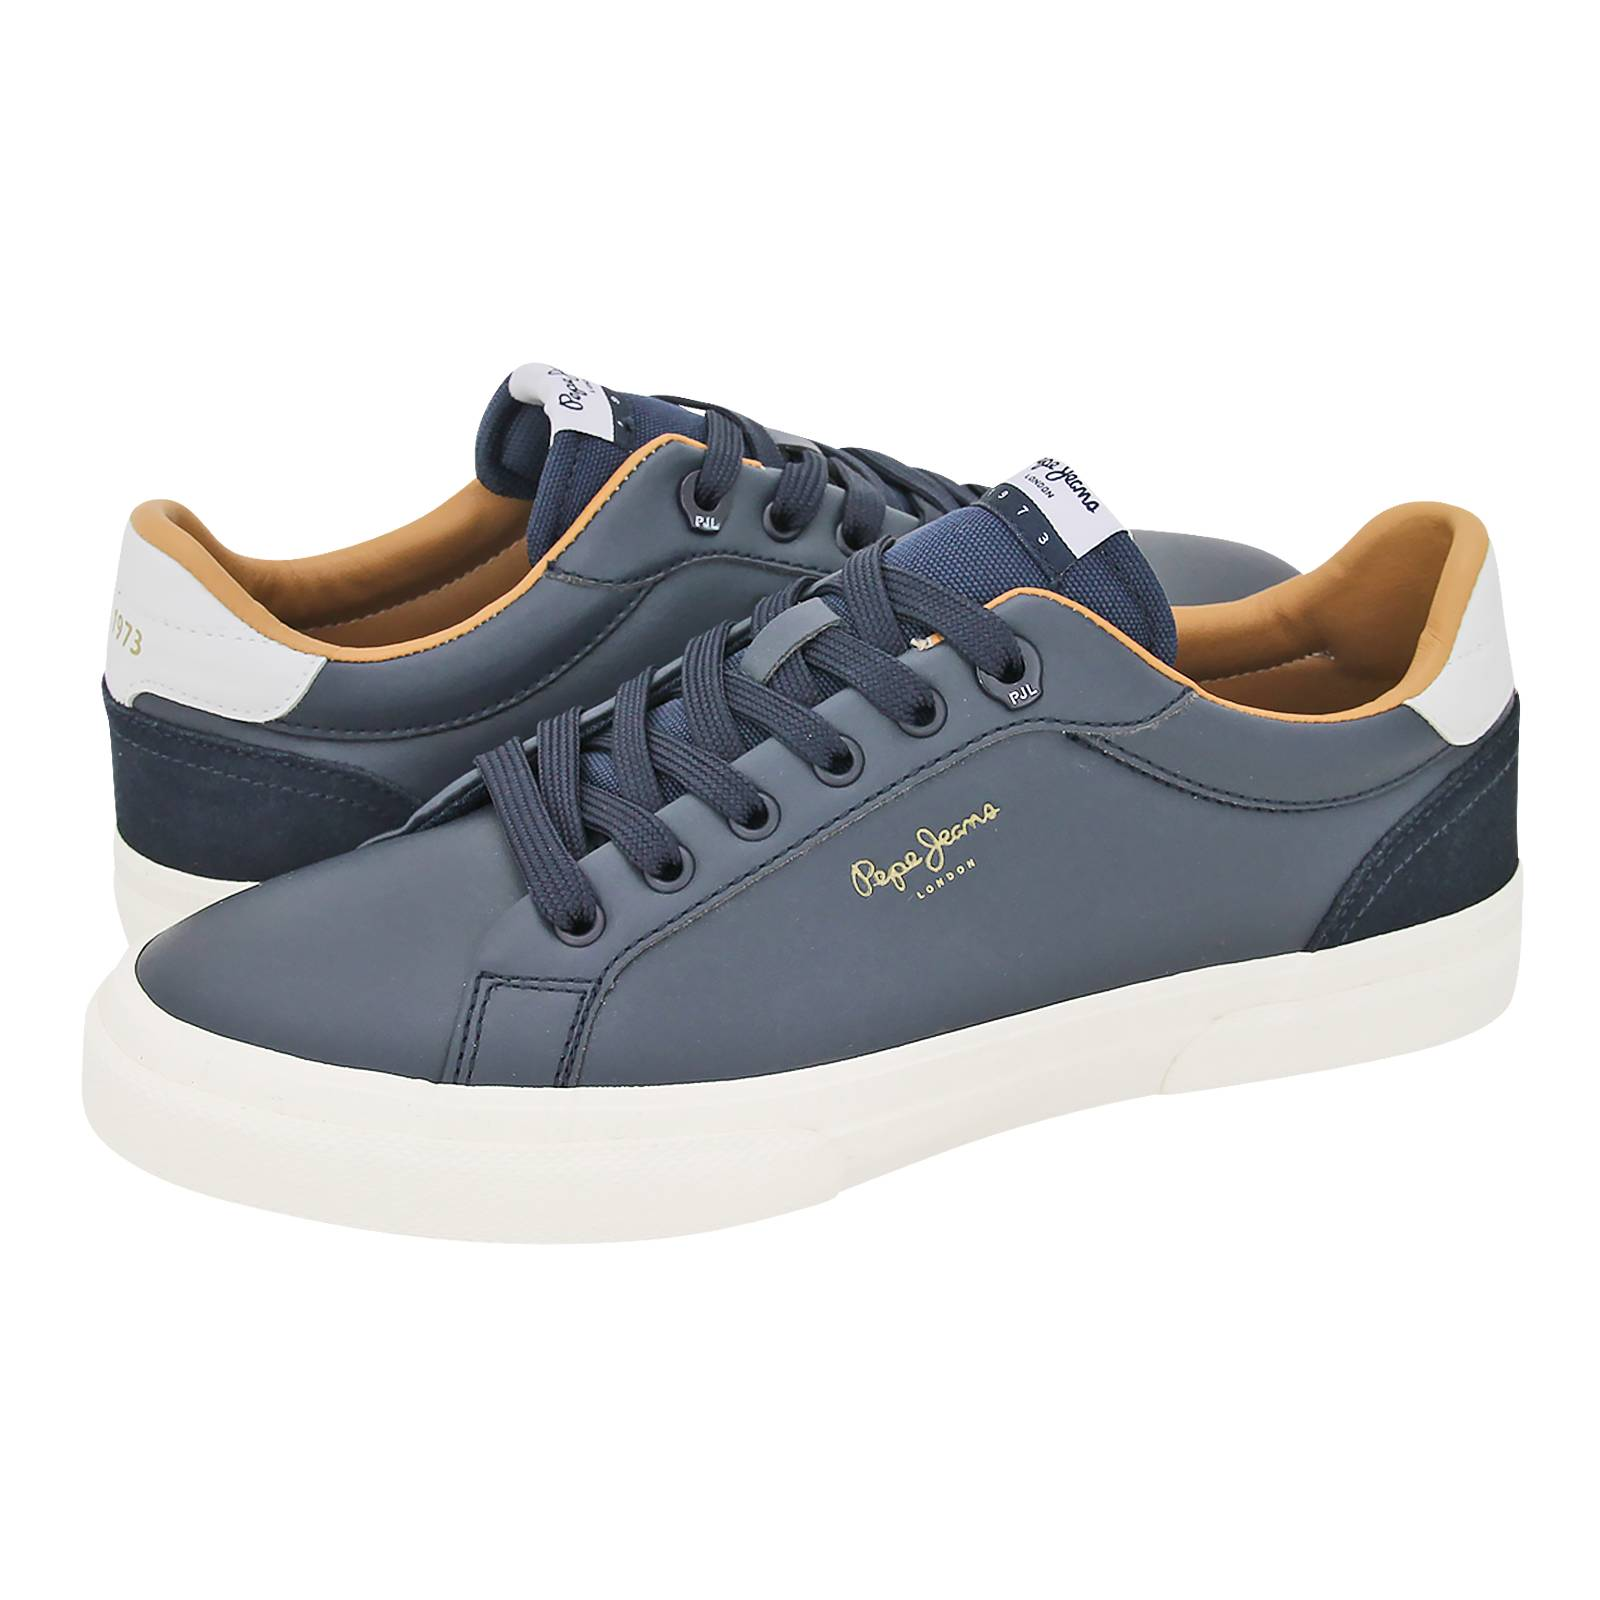 Kenton Classic Man Pepe Jeans Men S Casual Shoes Made Of Synthetic Leather And Suede Gianna Kazakou Online